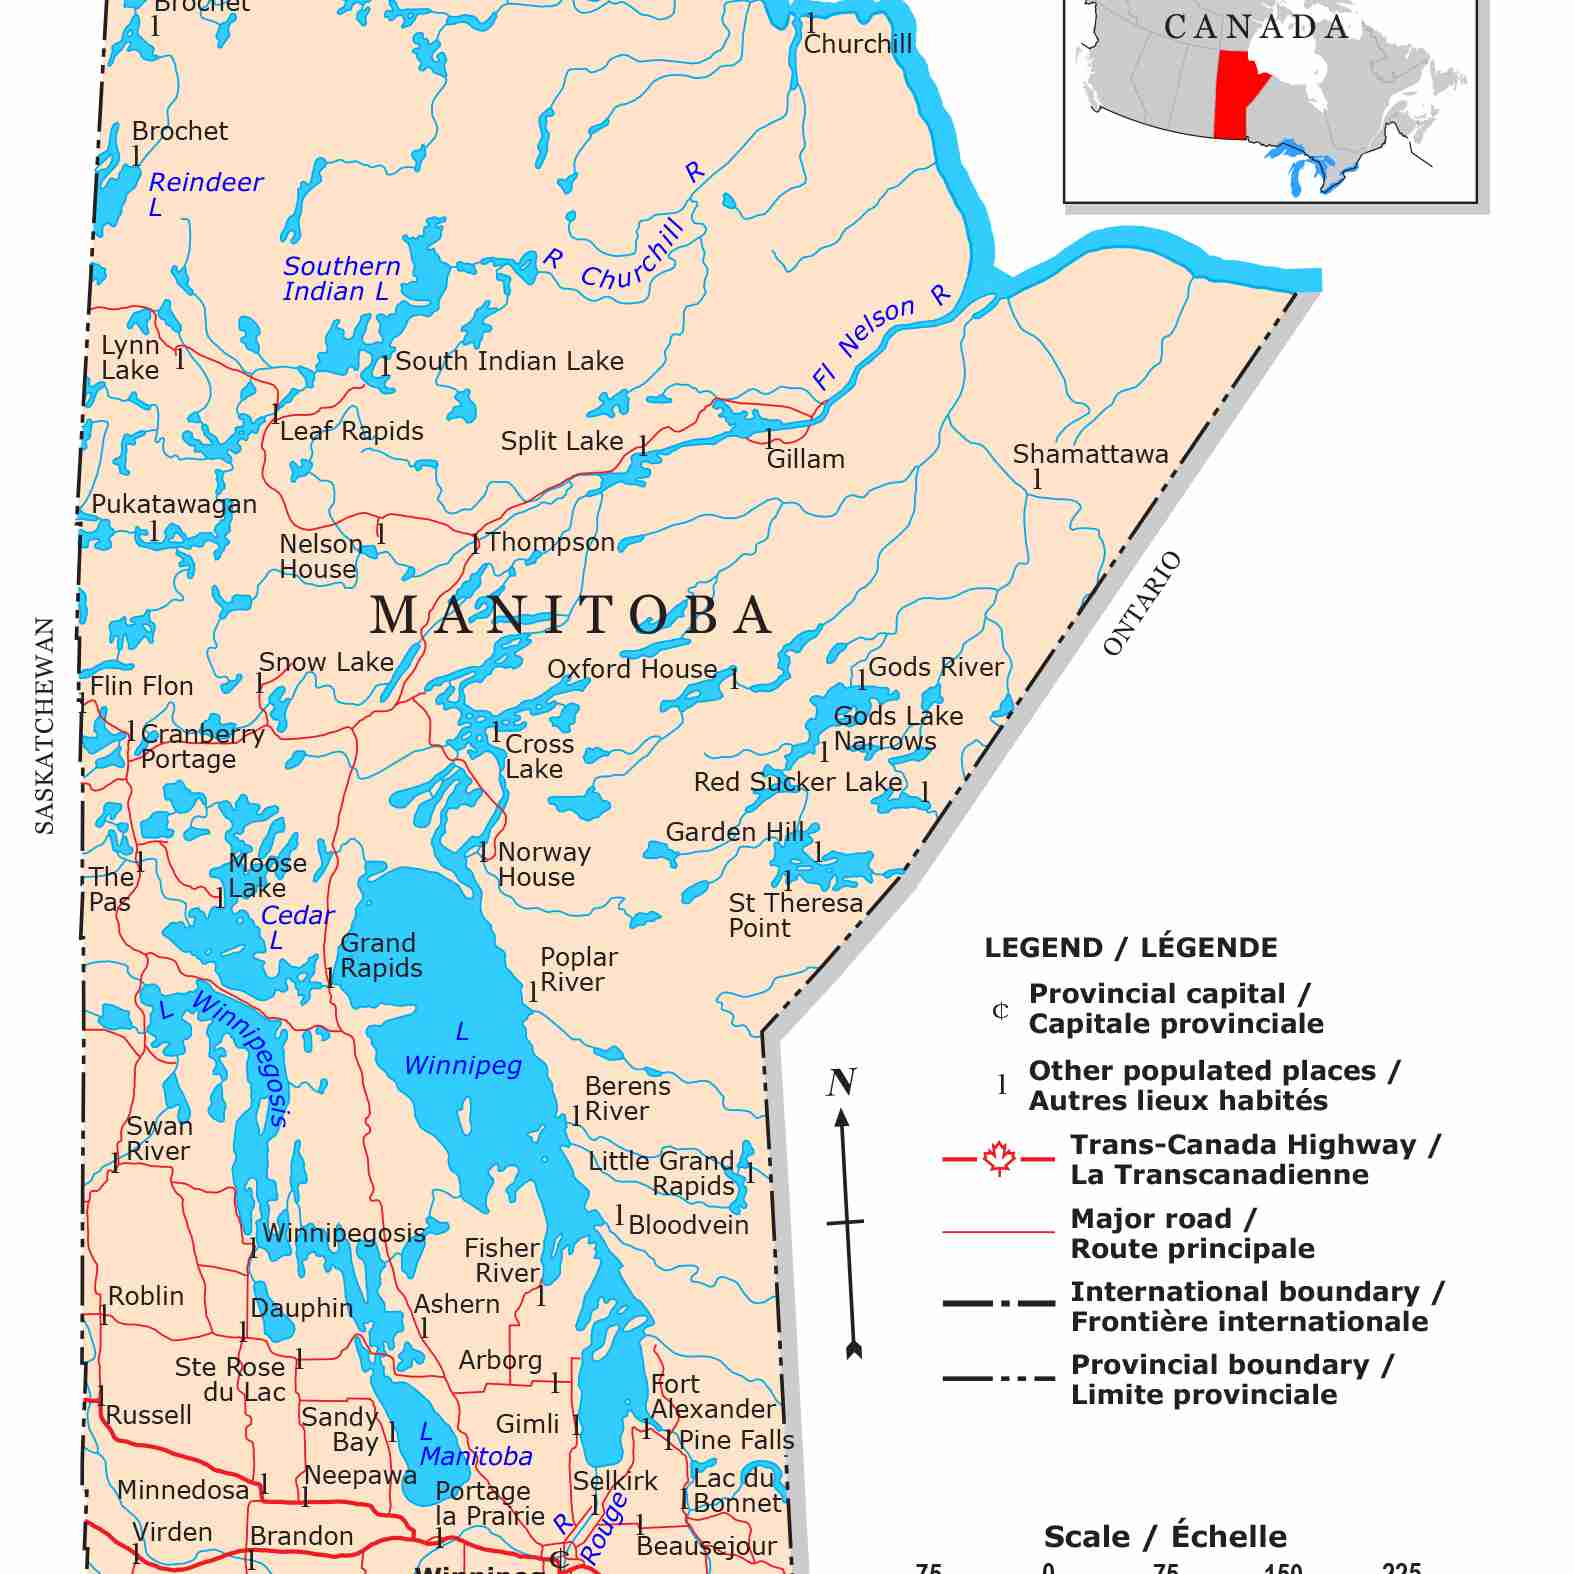 Map Of Canada Grade 9 Geography.Guide To Canadian Provinces And Territories